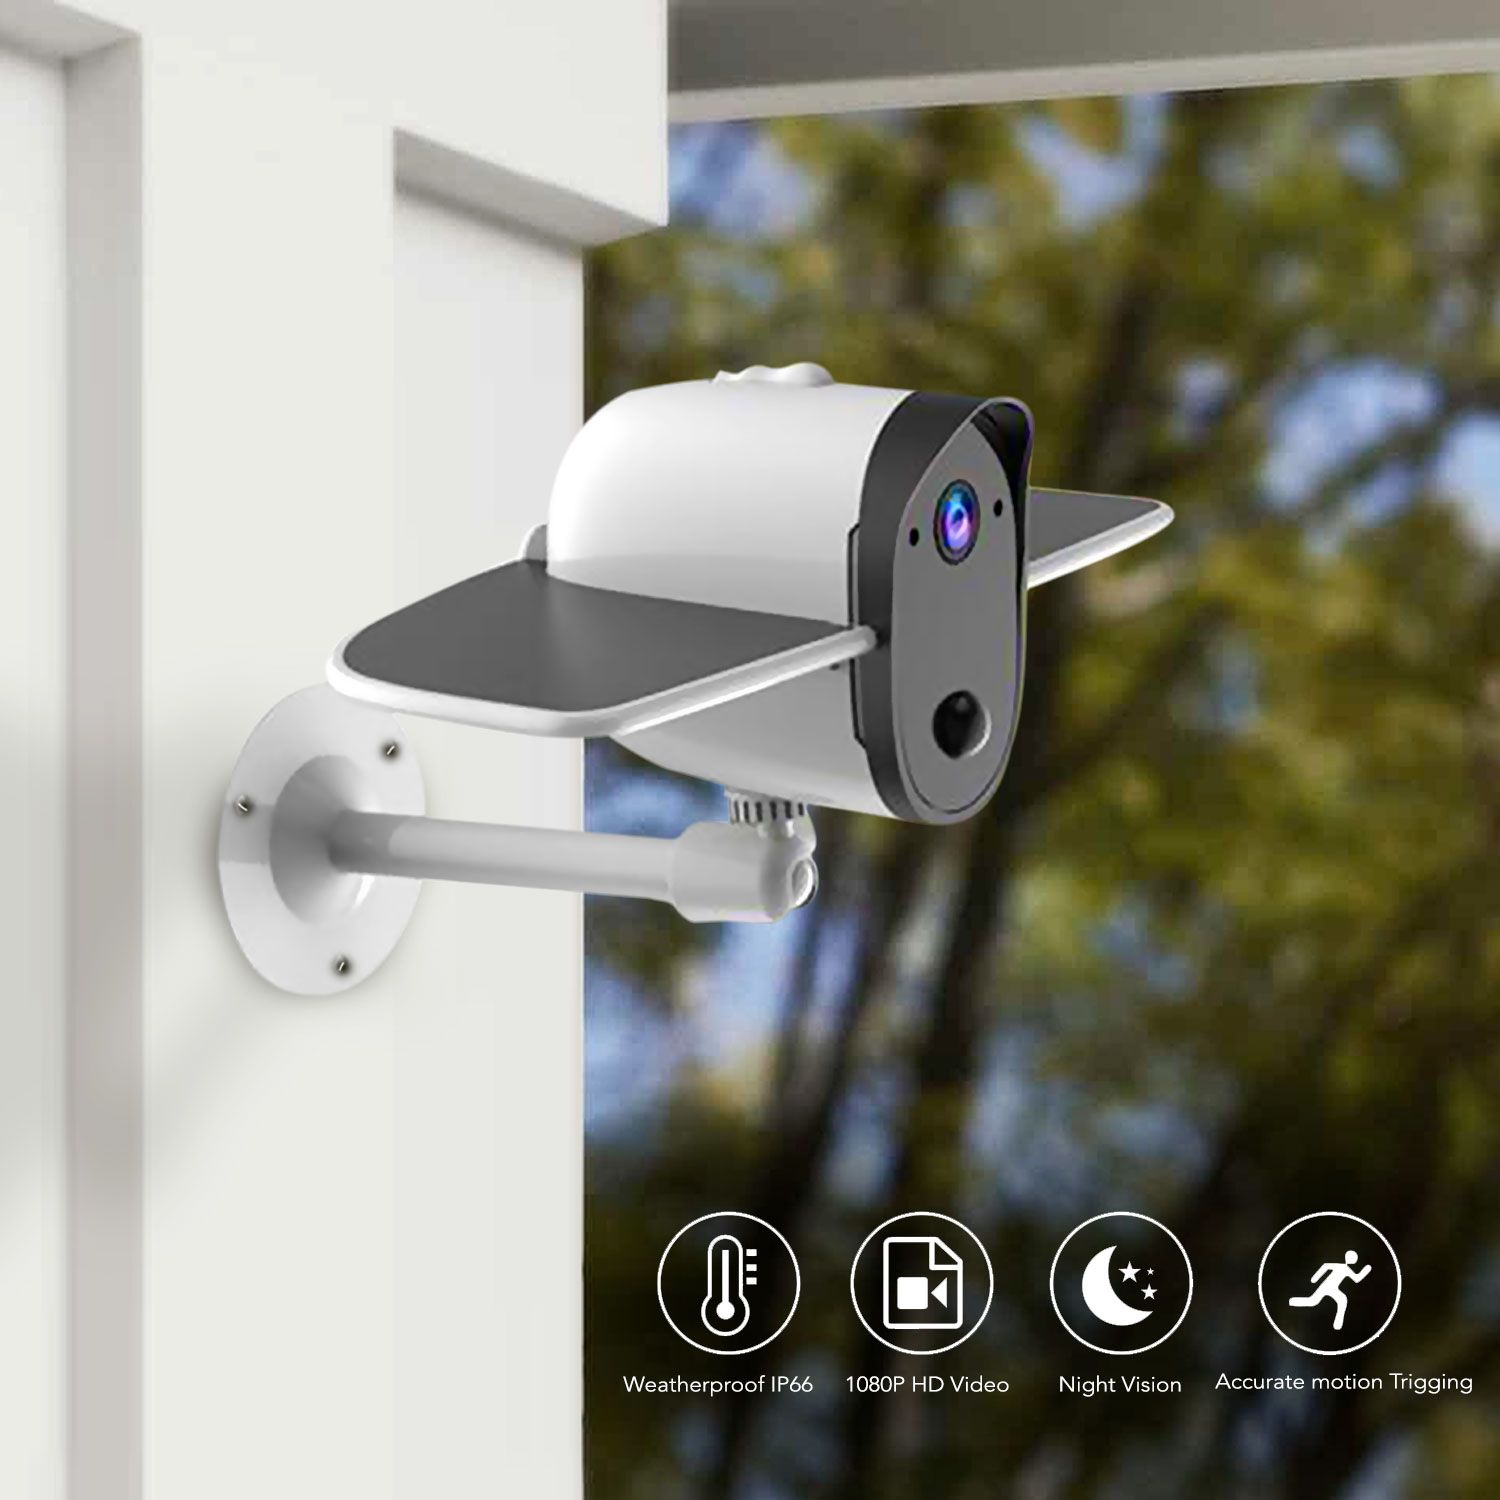 Soliom Bird S60 Outdoor Wireless Solar Home Security Camera Home Security Systems Security Cameras For Home Alarm Systems For Home